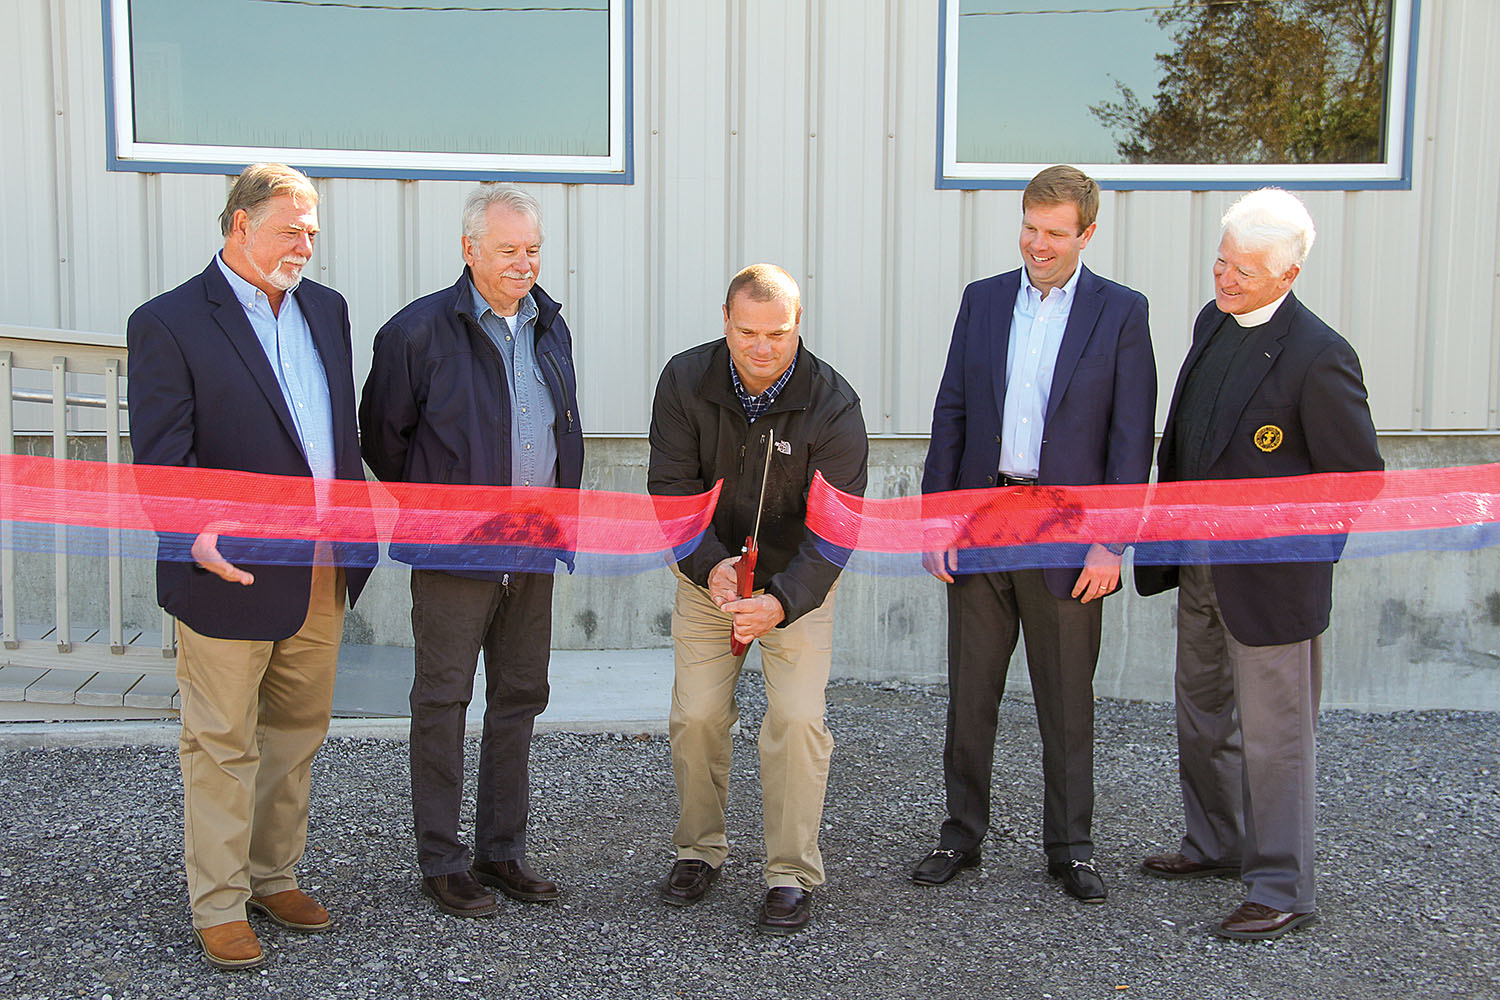 Ballard County Judge-Executive Todd Cooper cuts the ribbon to officially open Economy Boat Store as operations manager Barry Kelly (left), Wickliffe Mayor David Phillips, David Reynolds, managing director of Economy Boat Store, and Chaplain Kempton Baldridge look on.